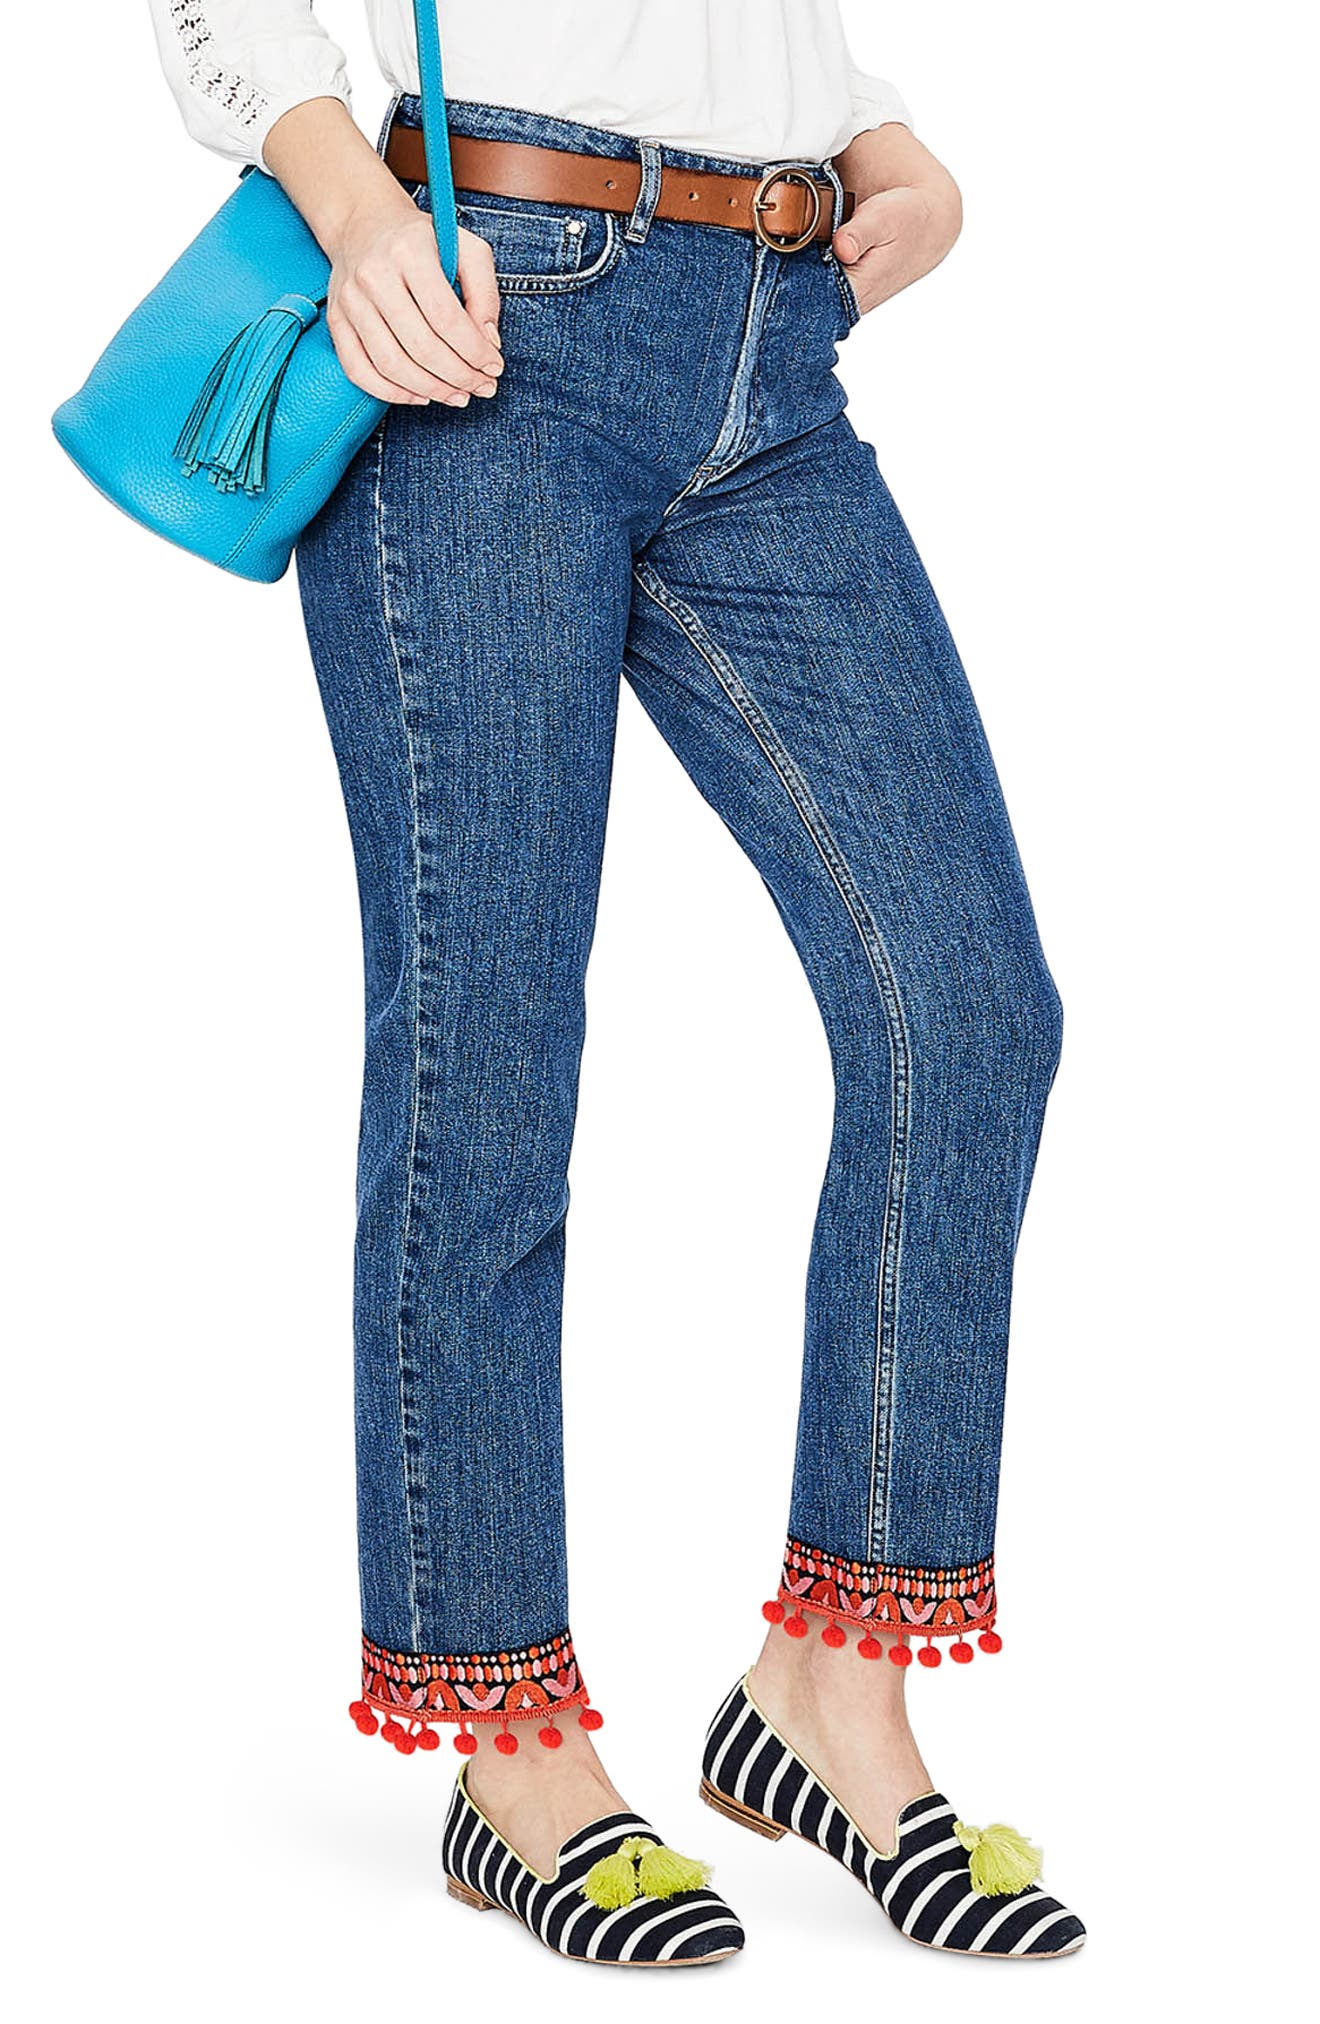 Cambridge Embellished Ankle Skimmer Jeans,                             Main thumbnail 1, color,                             Mid Vintage With Tri